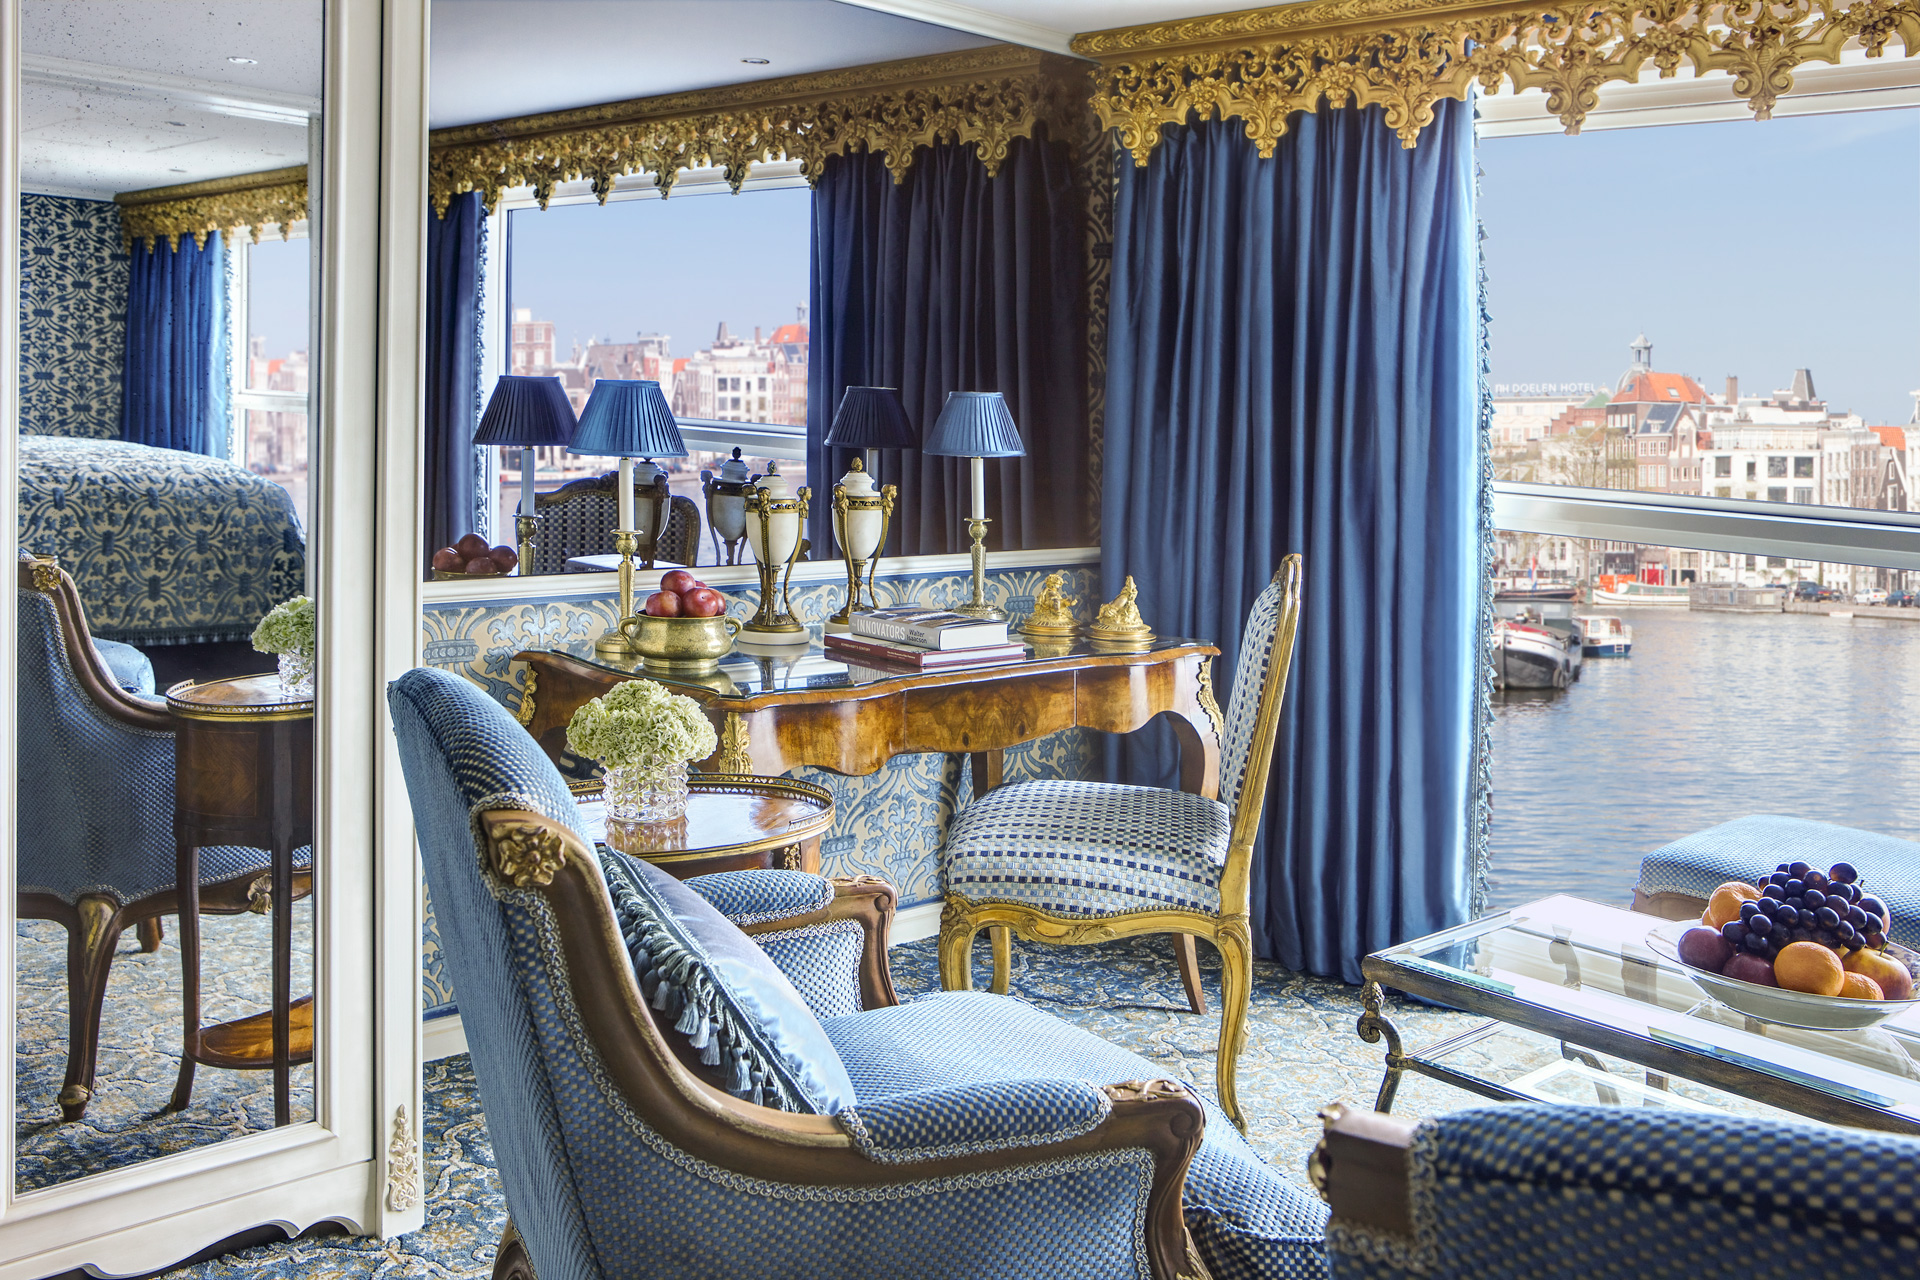 UNIWORLD Boutique River Cruises SS Maria Theresa Accommodation Royal Suite 1.jpg